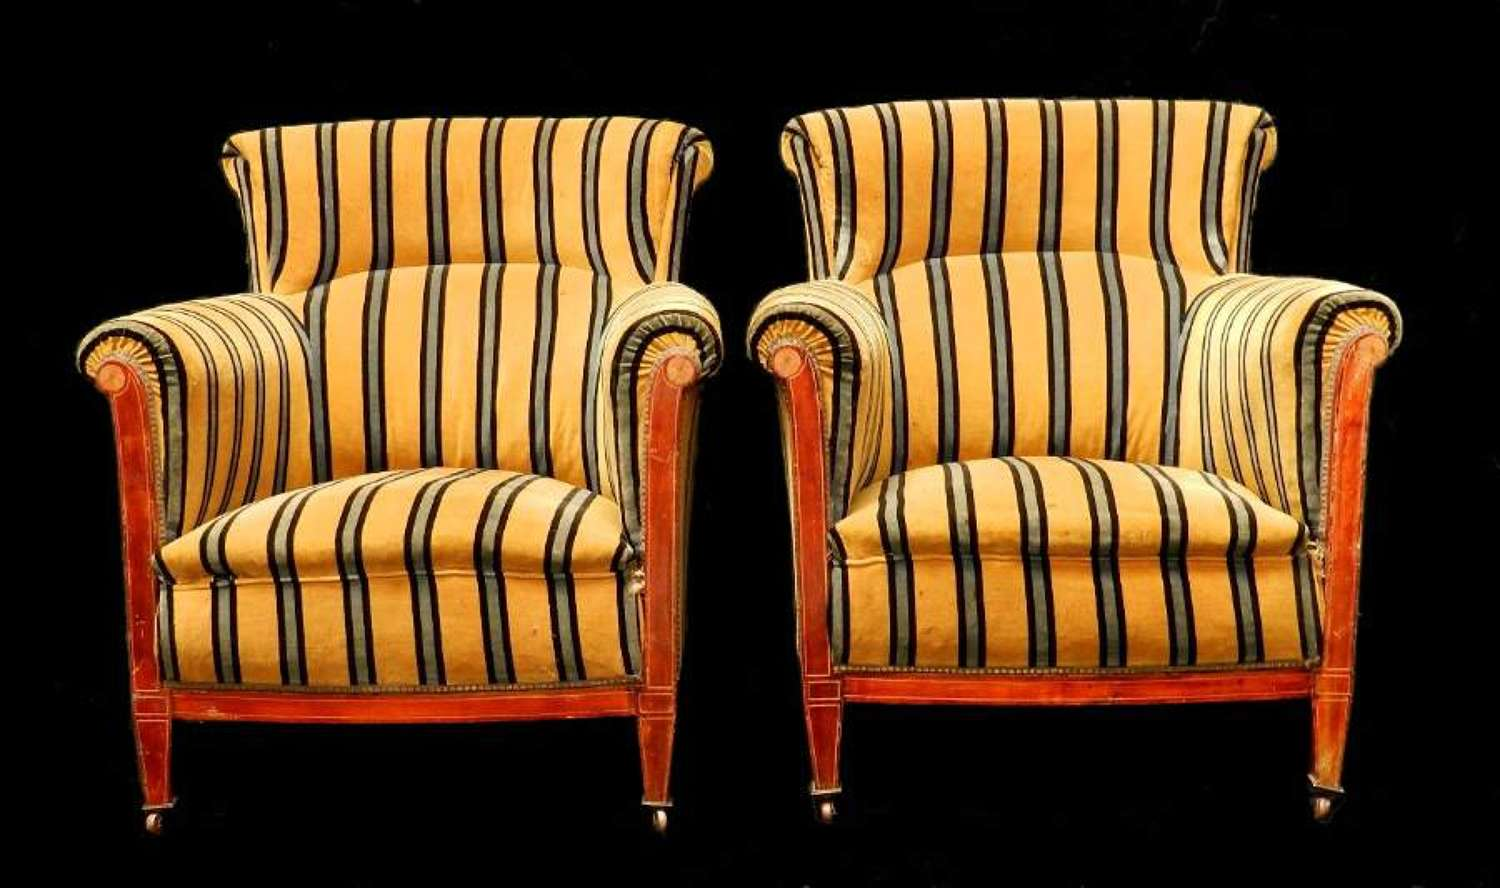 Handsome Pair of French Armchairs Fauteuils c1900 to restore / re-upholster